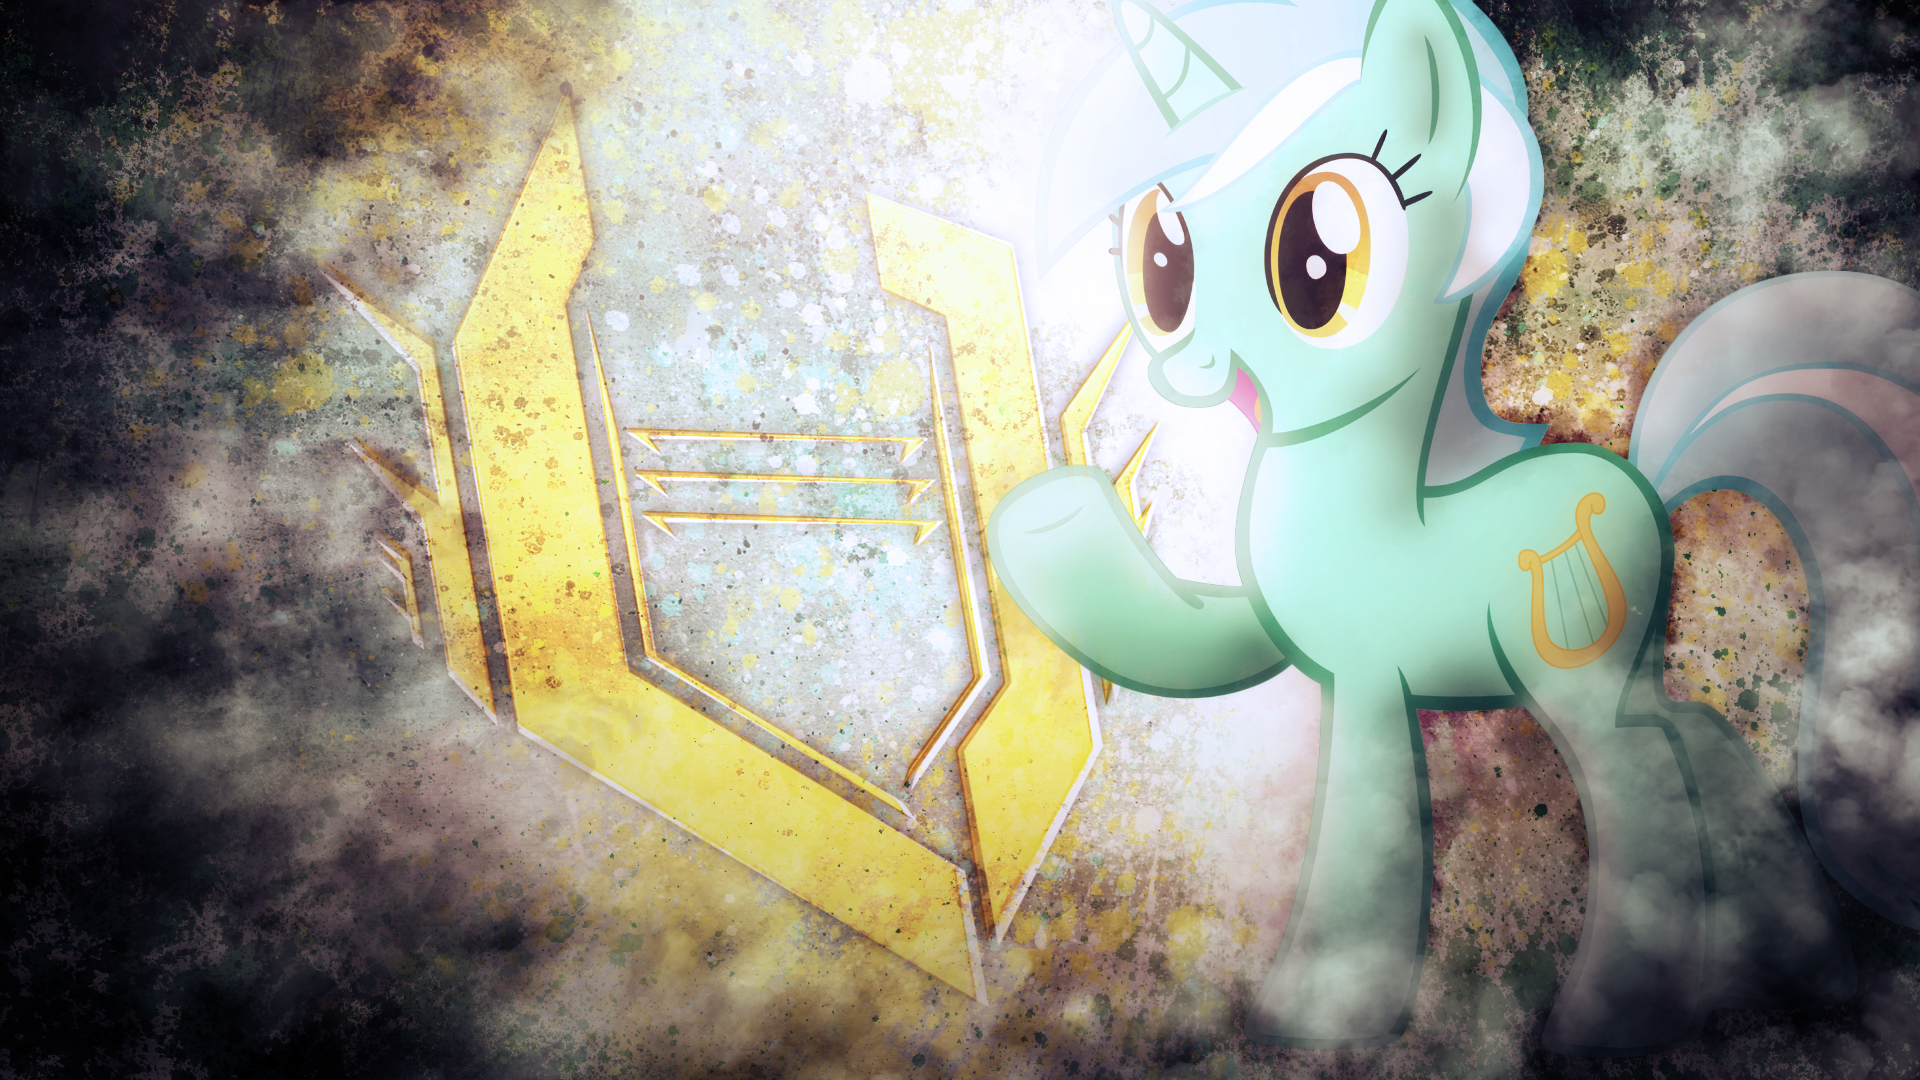 SUPER EPIC LYRA GRUNGE TECH POWER WALLPAPER by SandwichDelta